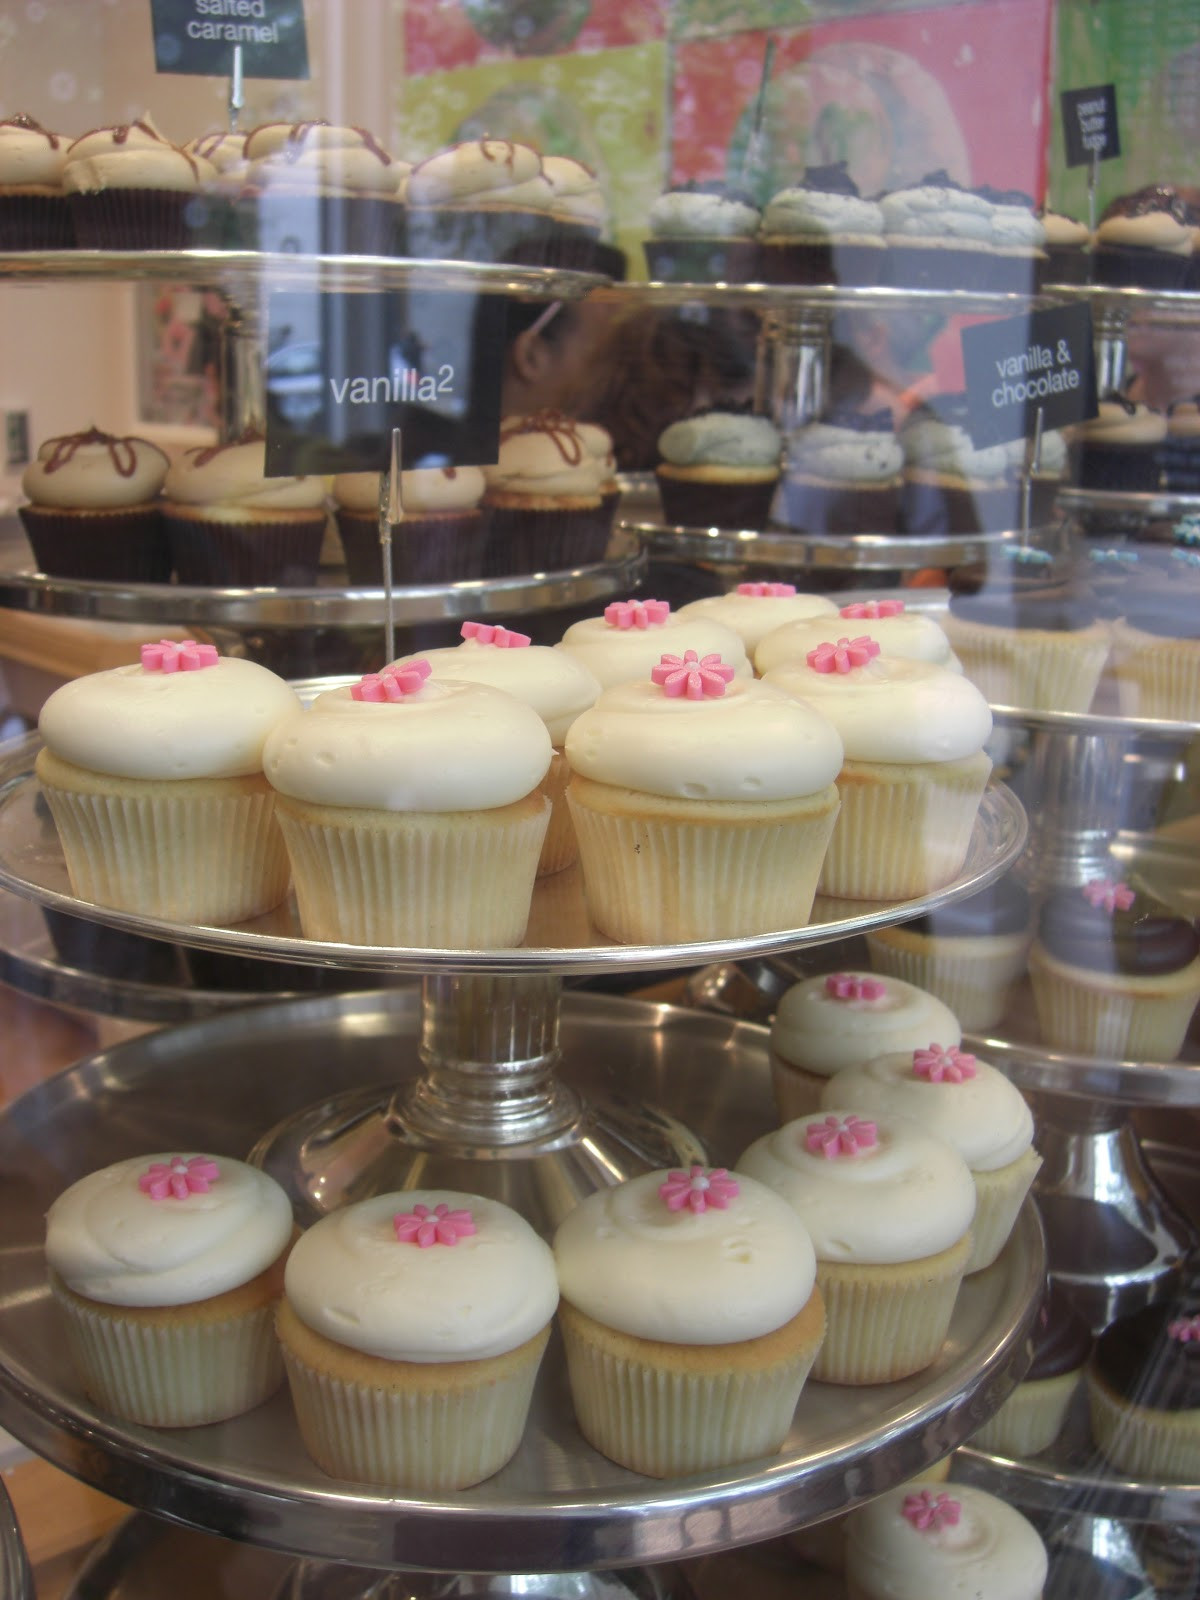 Georgetown Cupcakes Boston  The Boston Bakery Babe Geor own Cupcakes A vision of